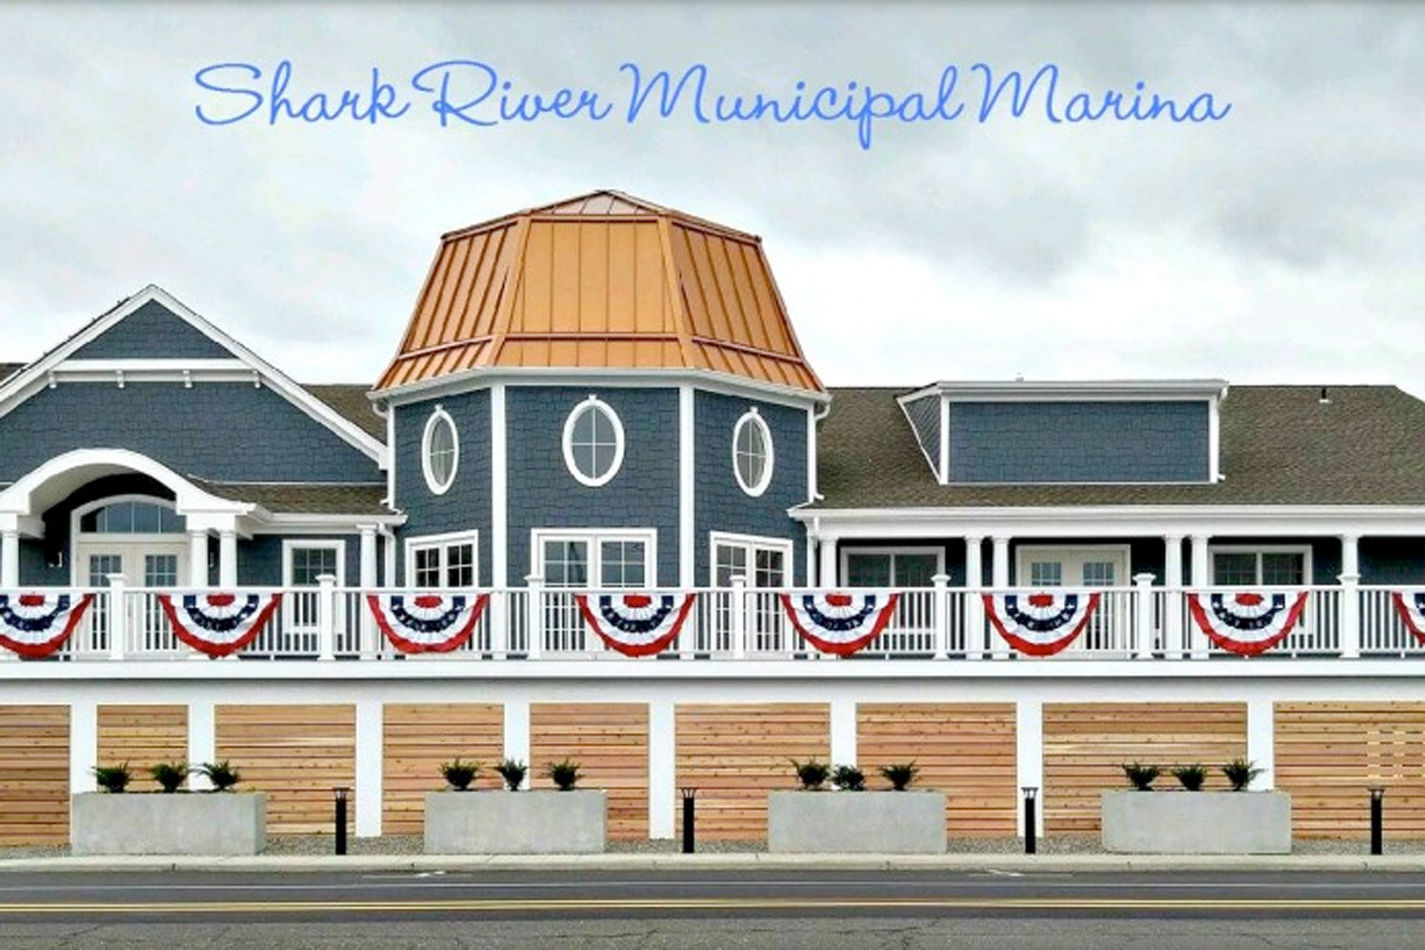 Shark River Municipal Marina in Neptune, NJ, United States